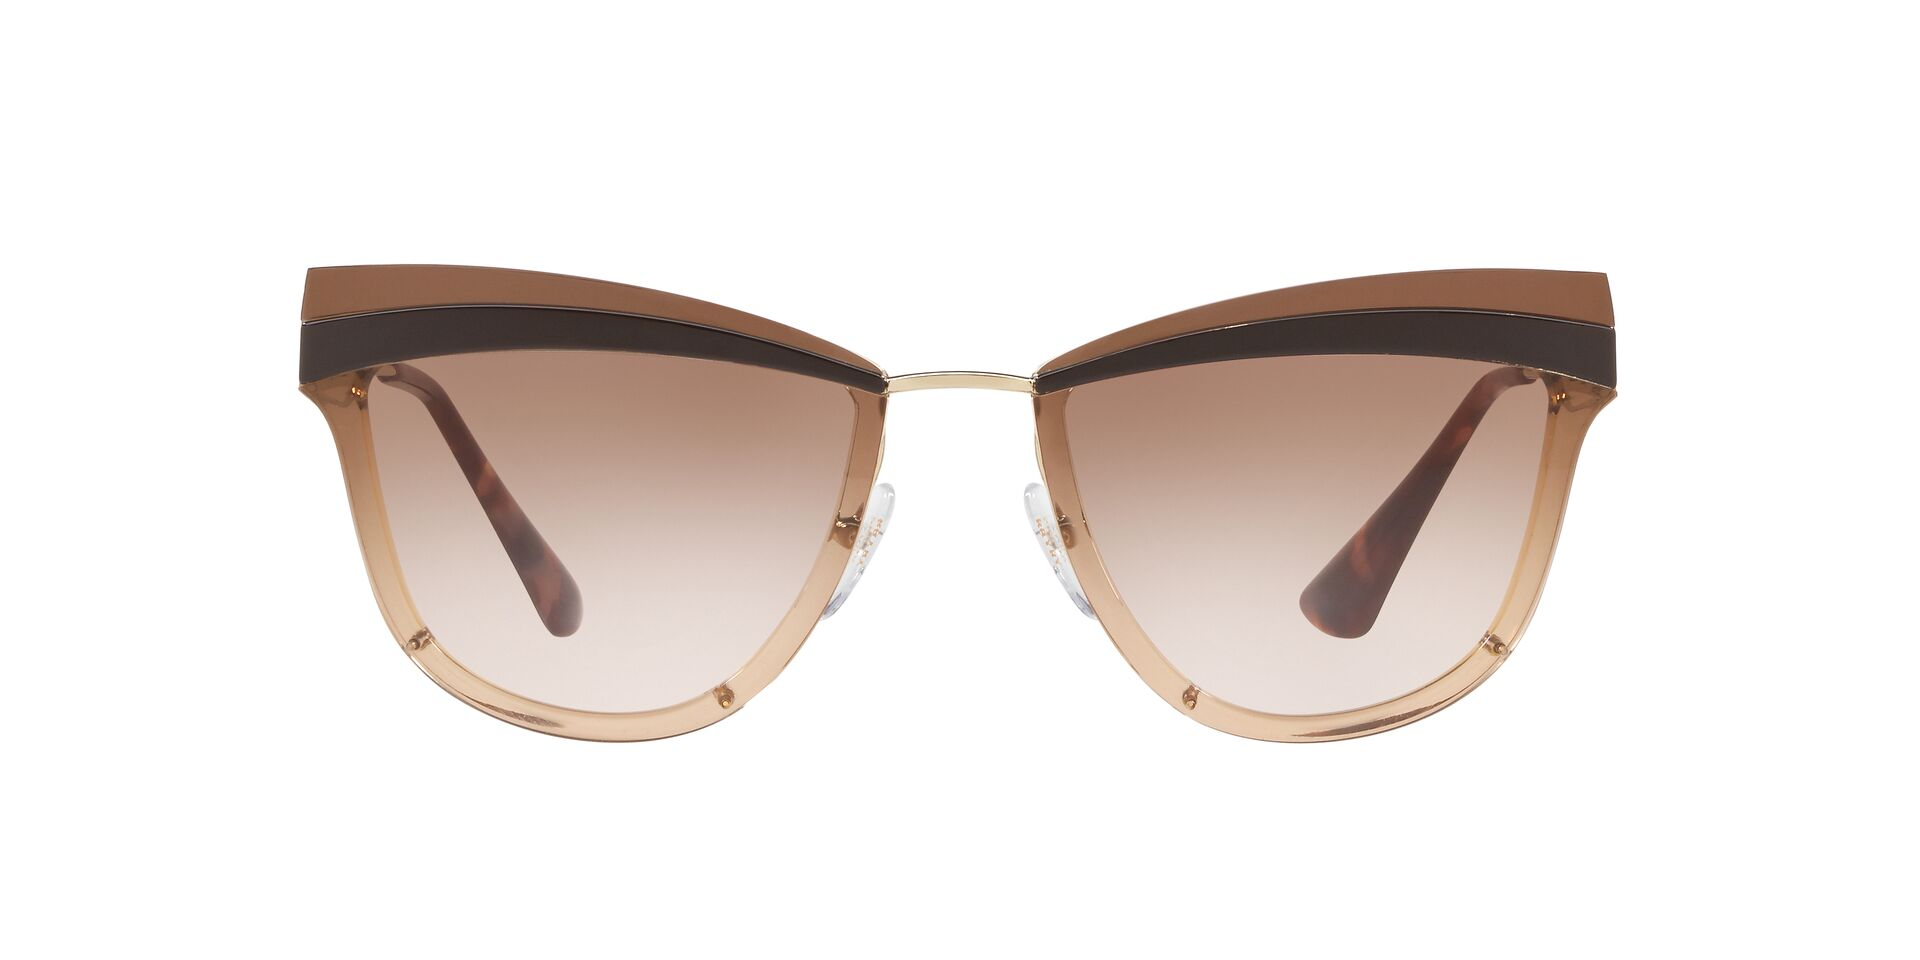 Prada - PR12US Pale Gold/Brown Gradient Cat Eye Women Sunglasses - 65mm